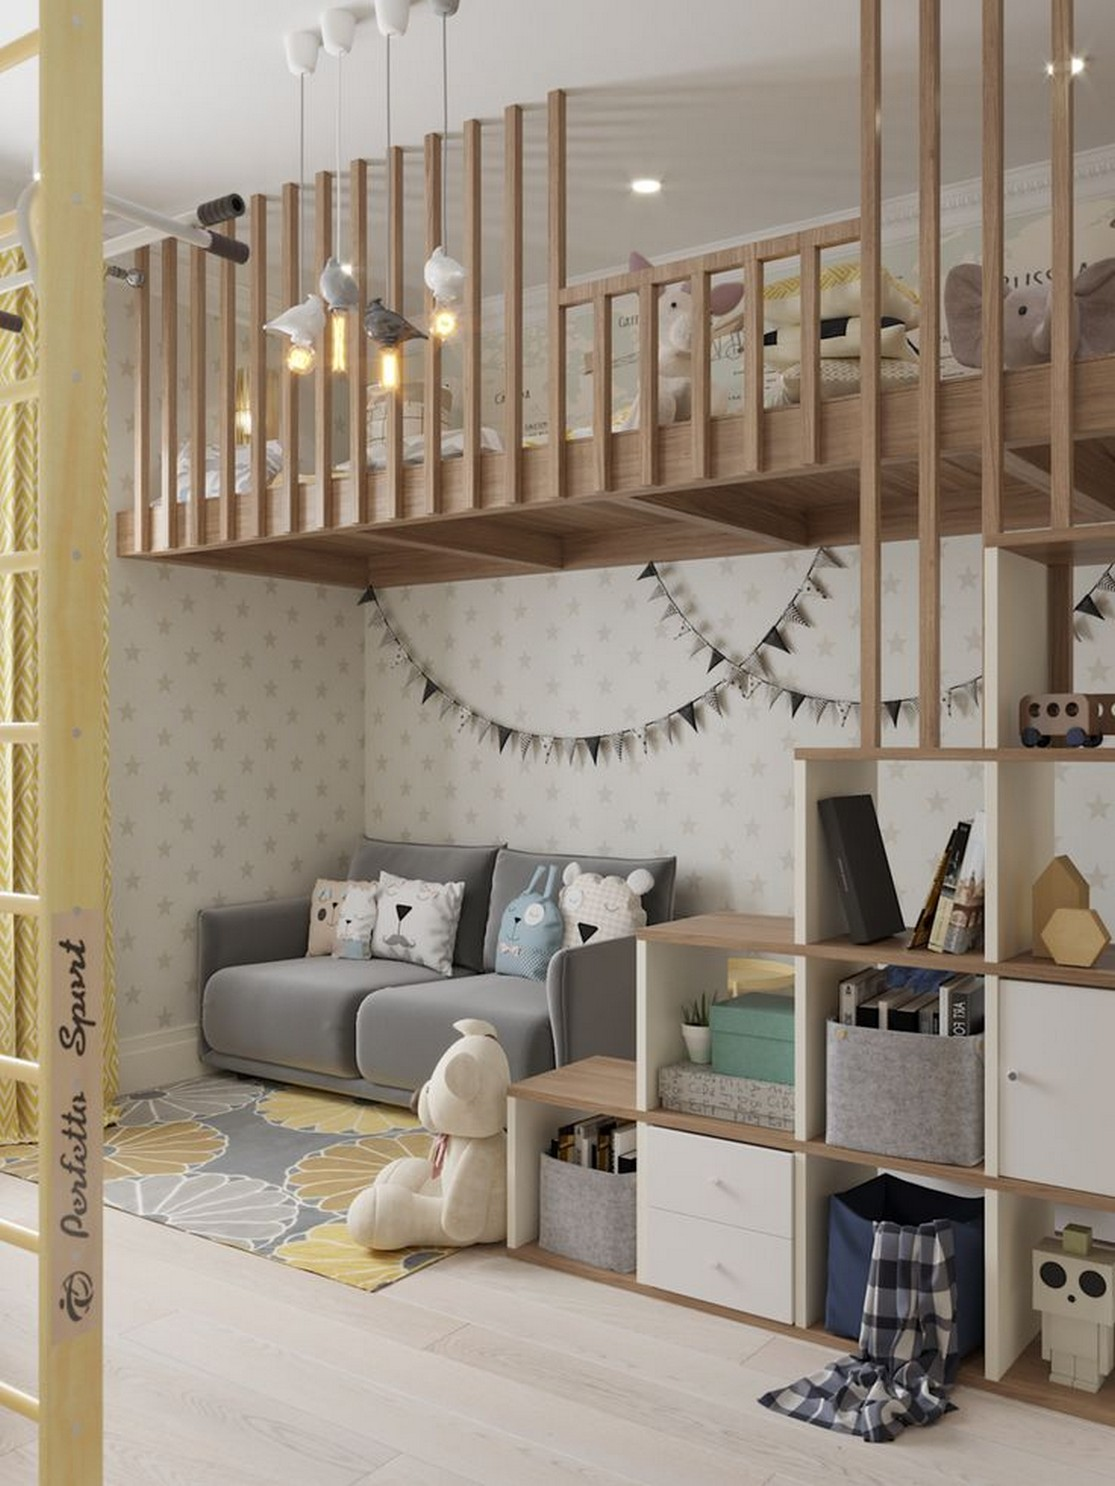 80 models bunk bed 4 important factors in choosing a bunk bed 49